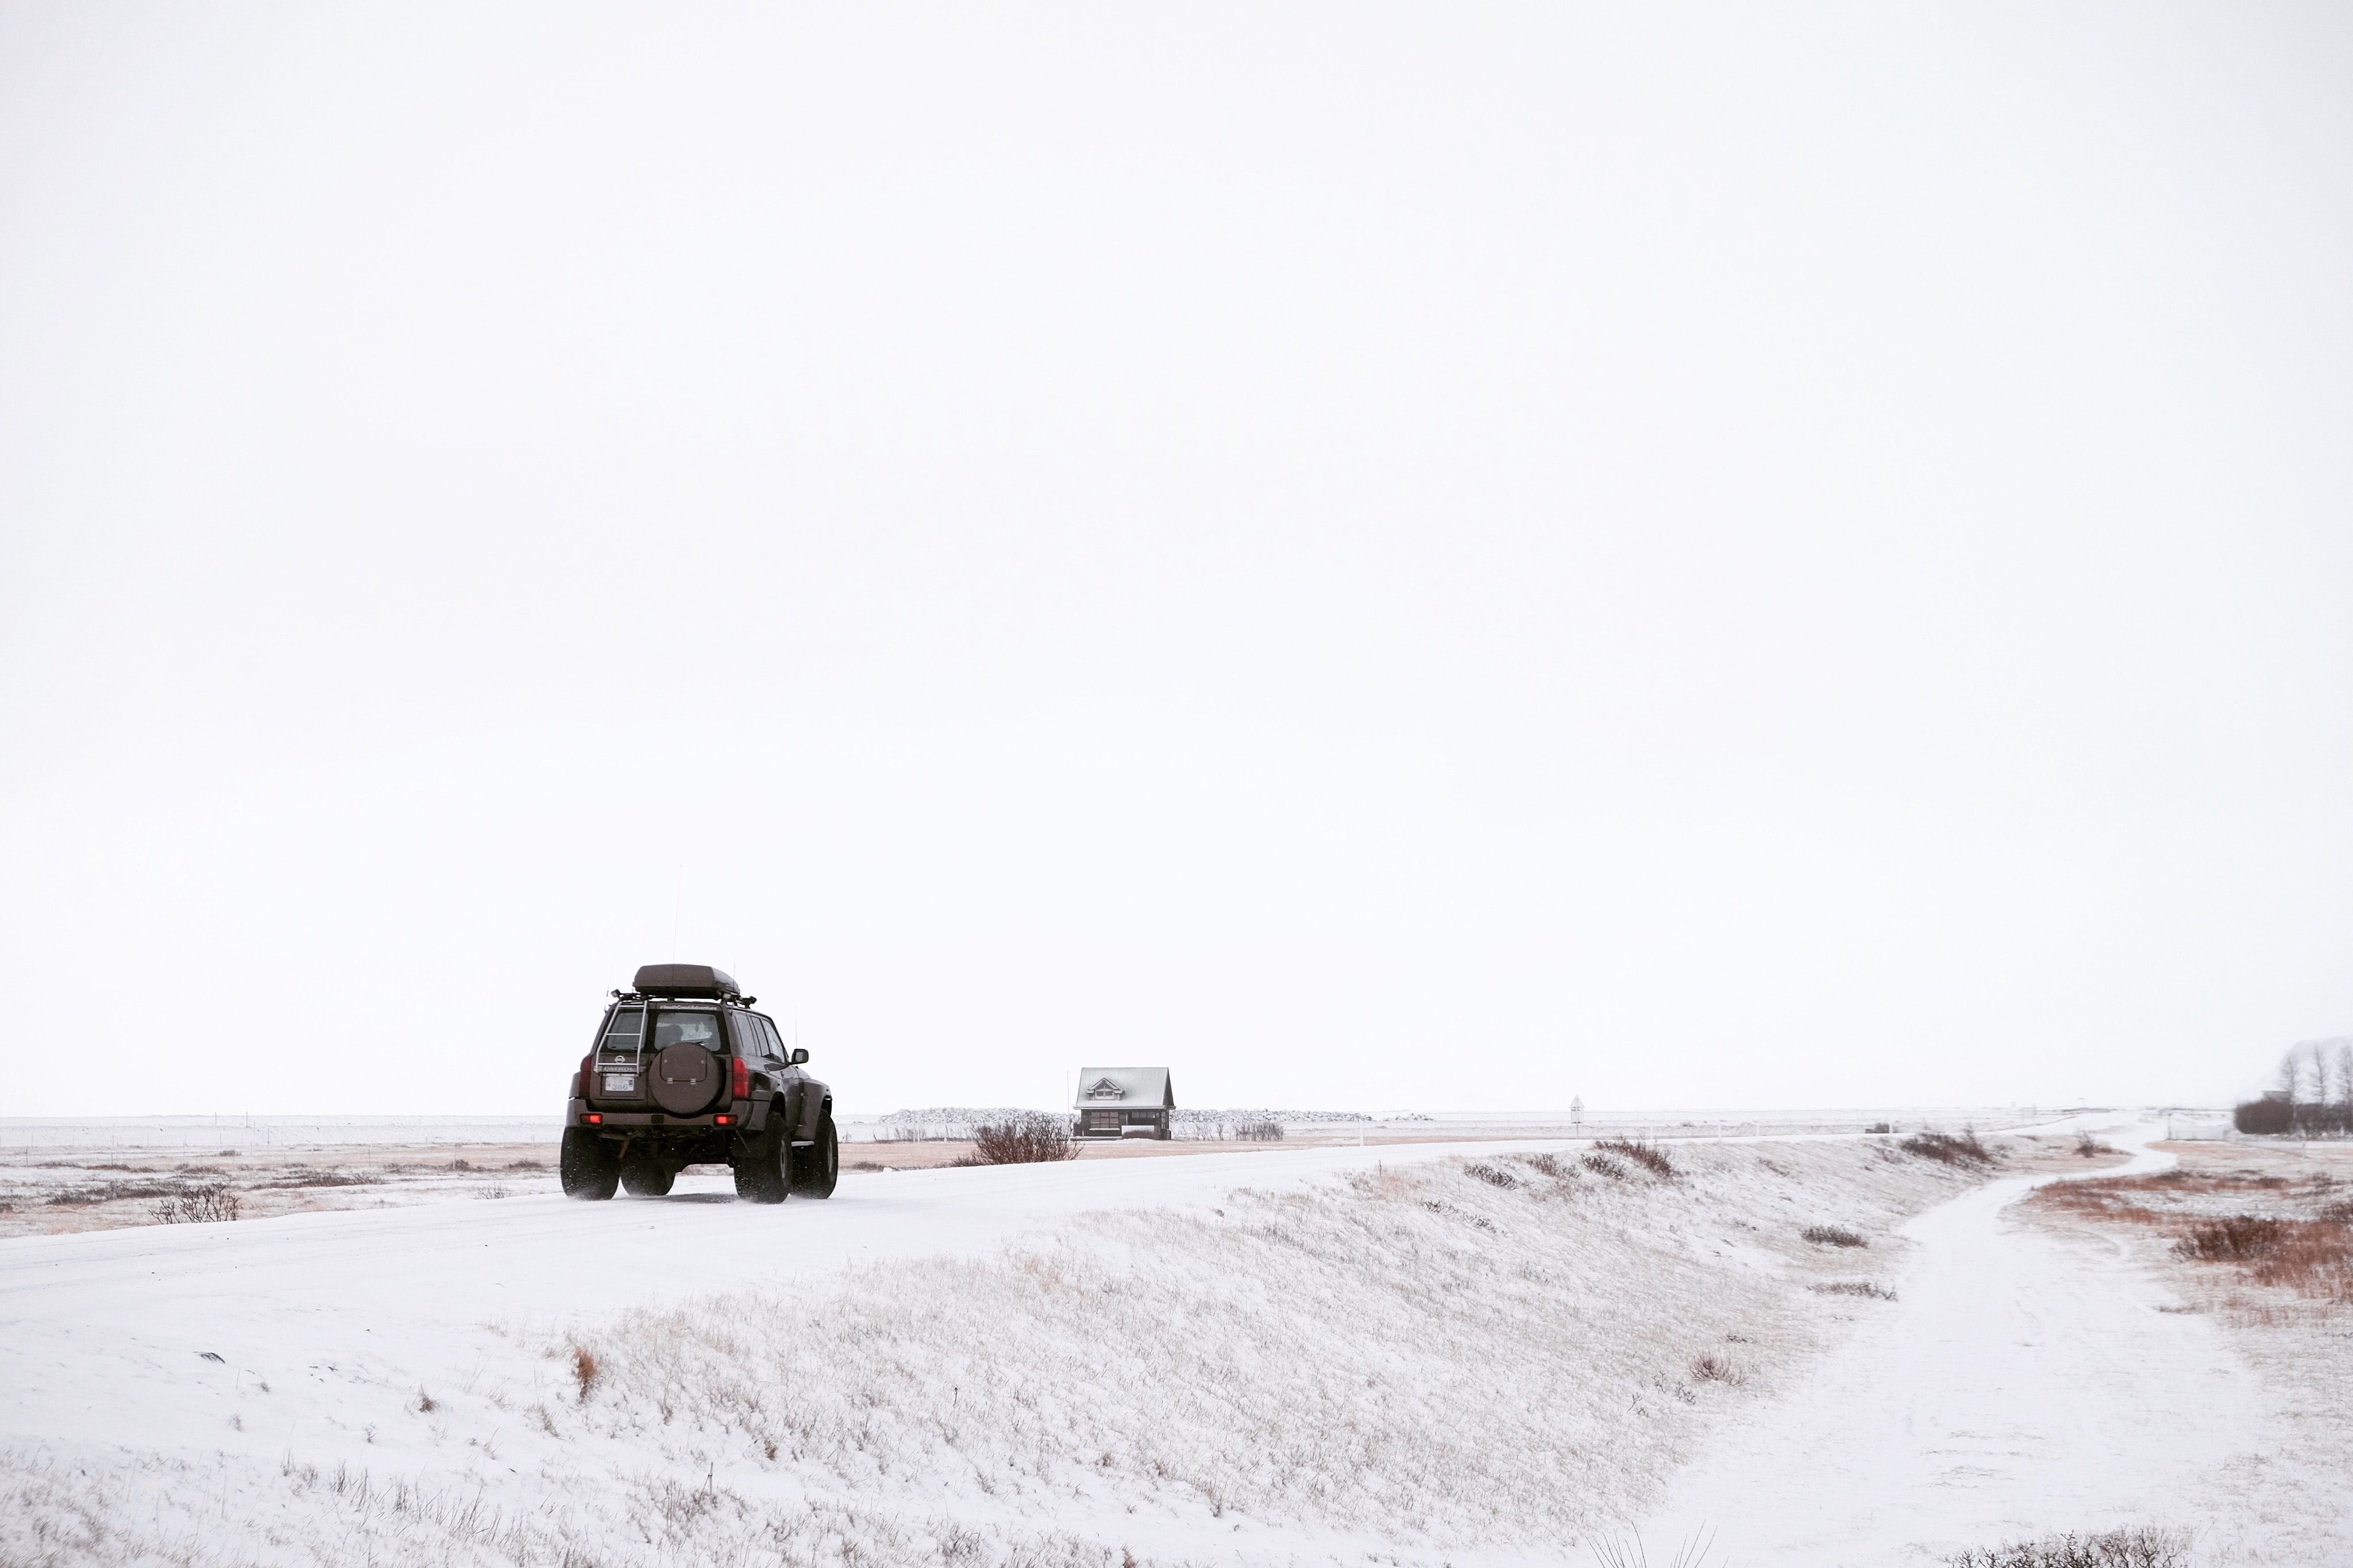 Offroad jeep driving on the rural snowy road during winter in Iceland